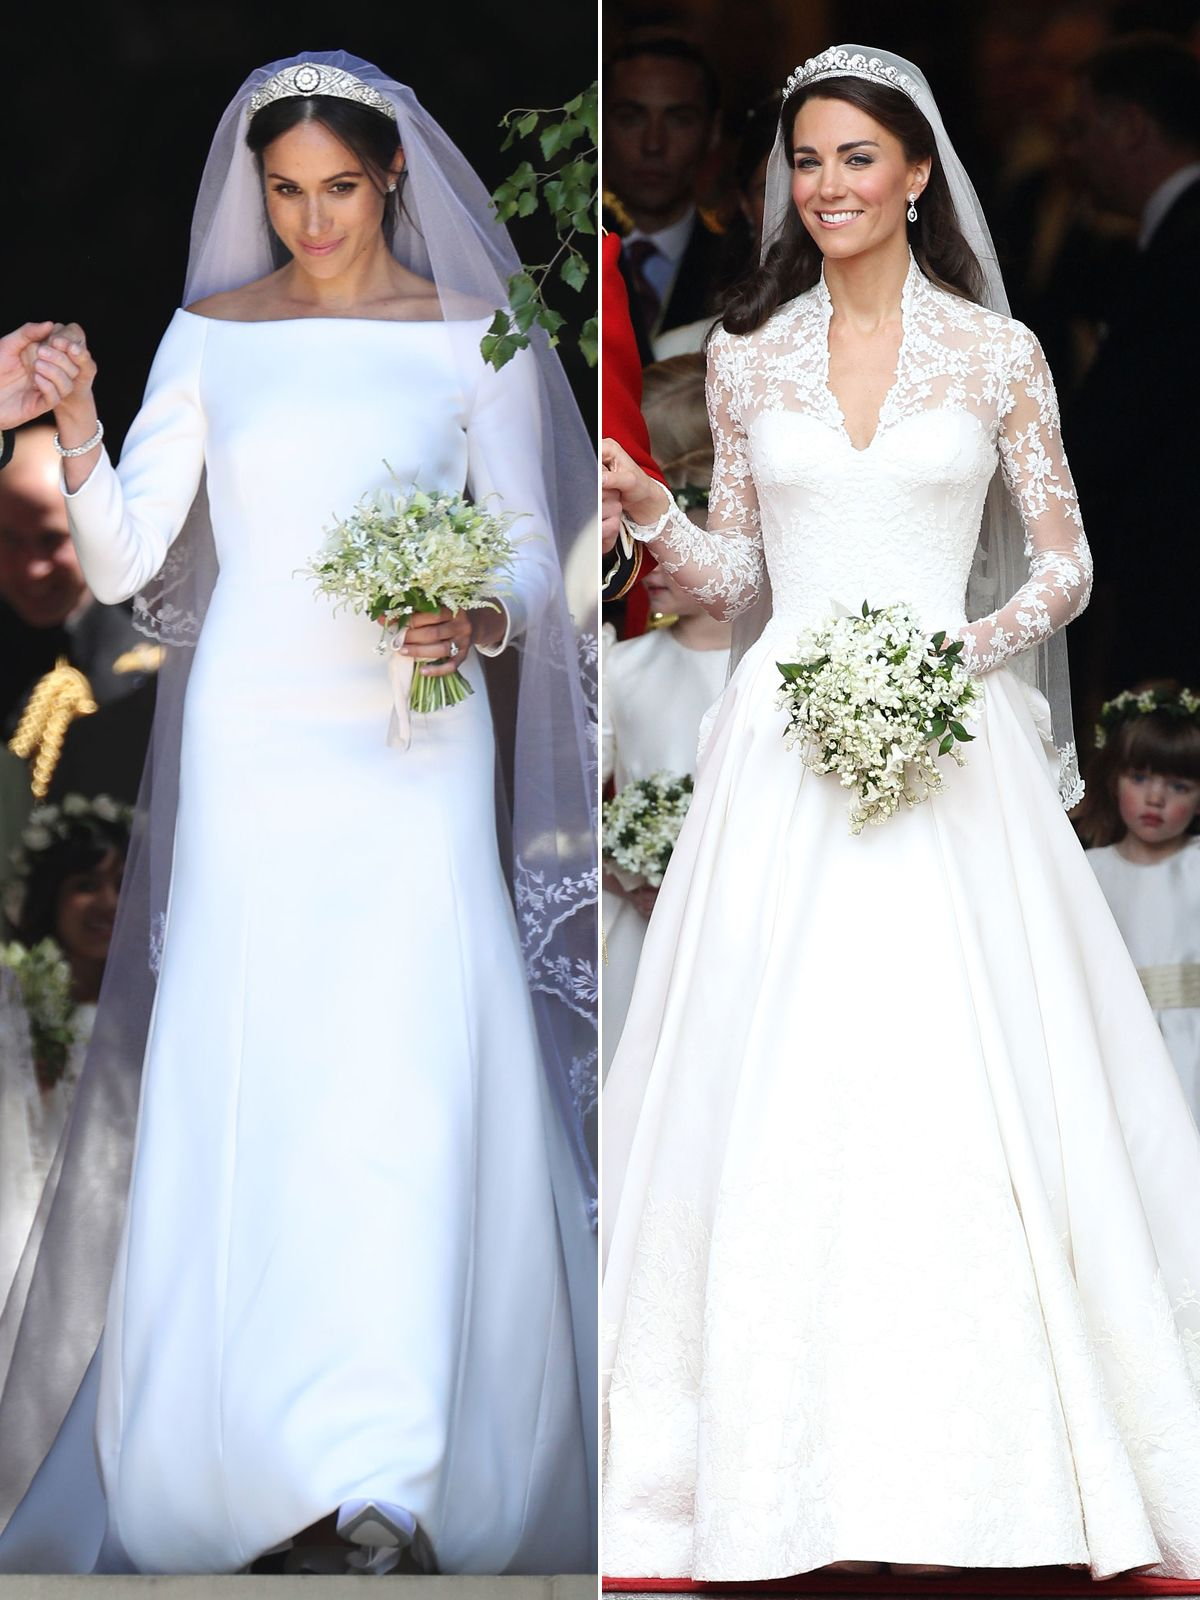 princess brides a side by side comparison of meghan markle and kate middleton s wedding gowns kate wedding dress royal wedding dress princess diana wedding dress royal wedding dress